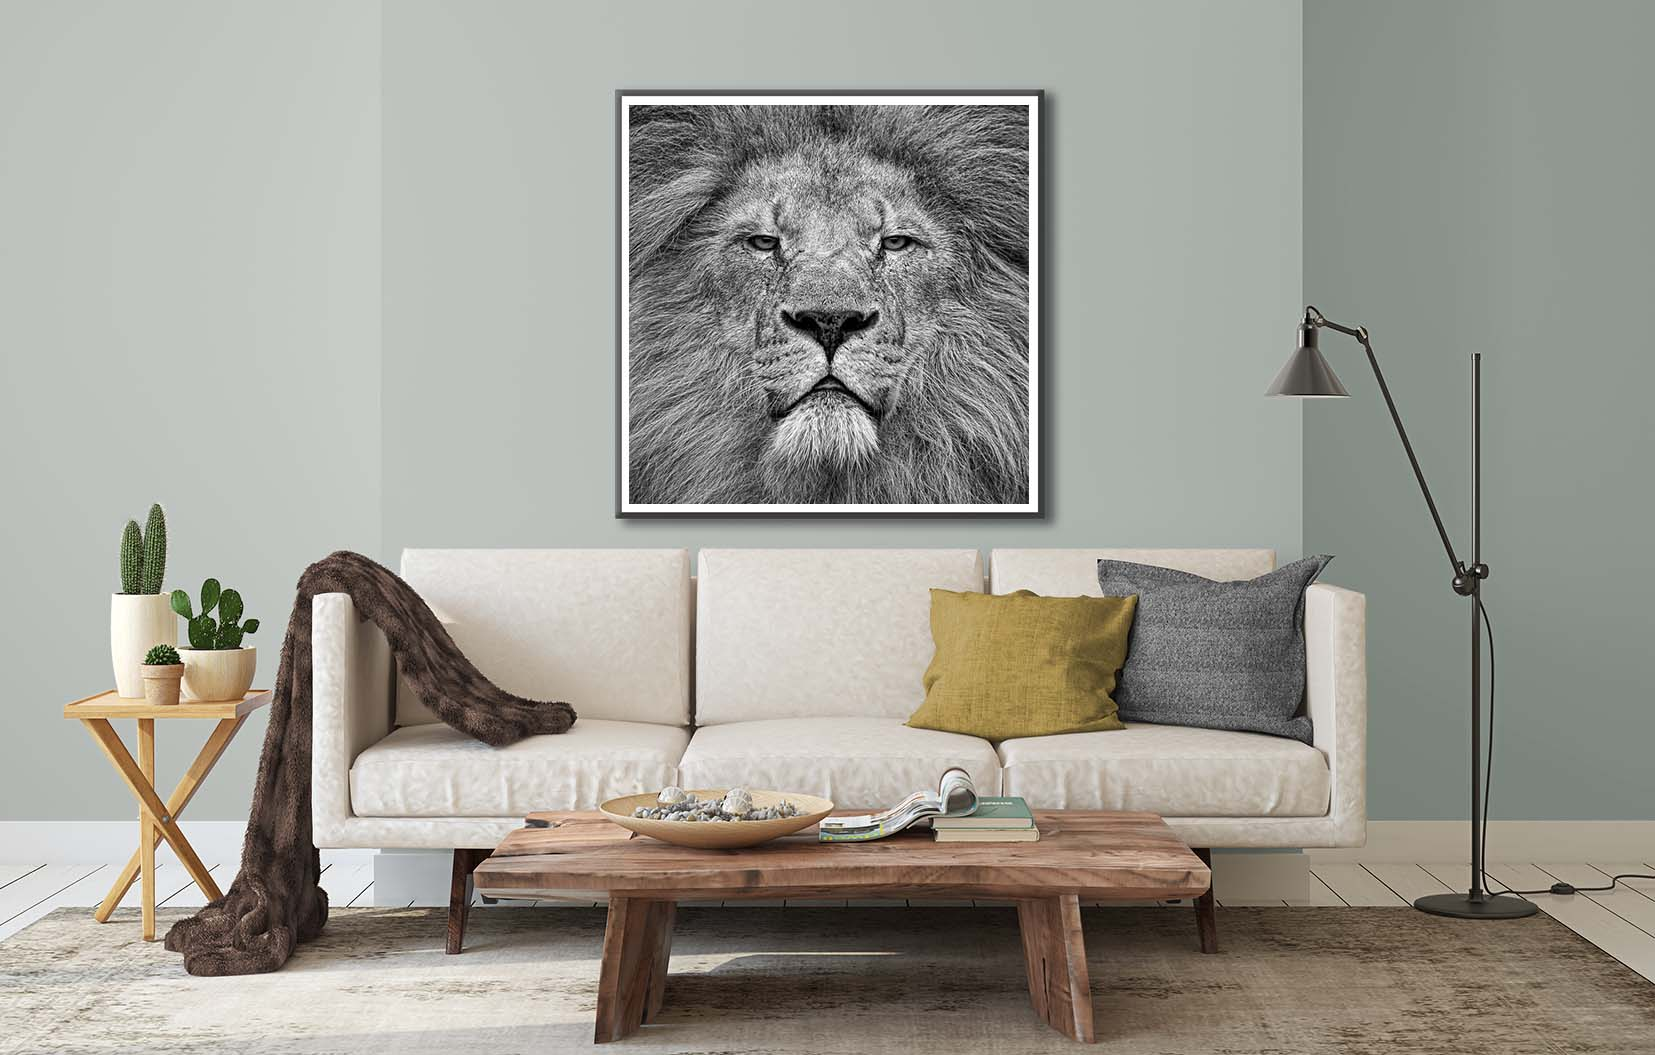 Fearless. This black and white print of a lion is a limited edition photographic print by fine art photographer Paul Coghlin FBIPP. It shows a fearless lion, looking straight into the camera.